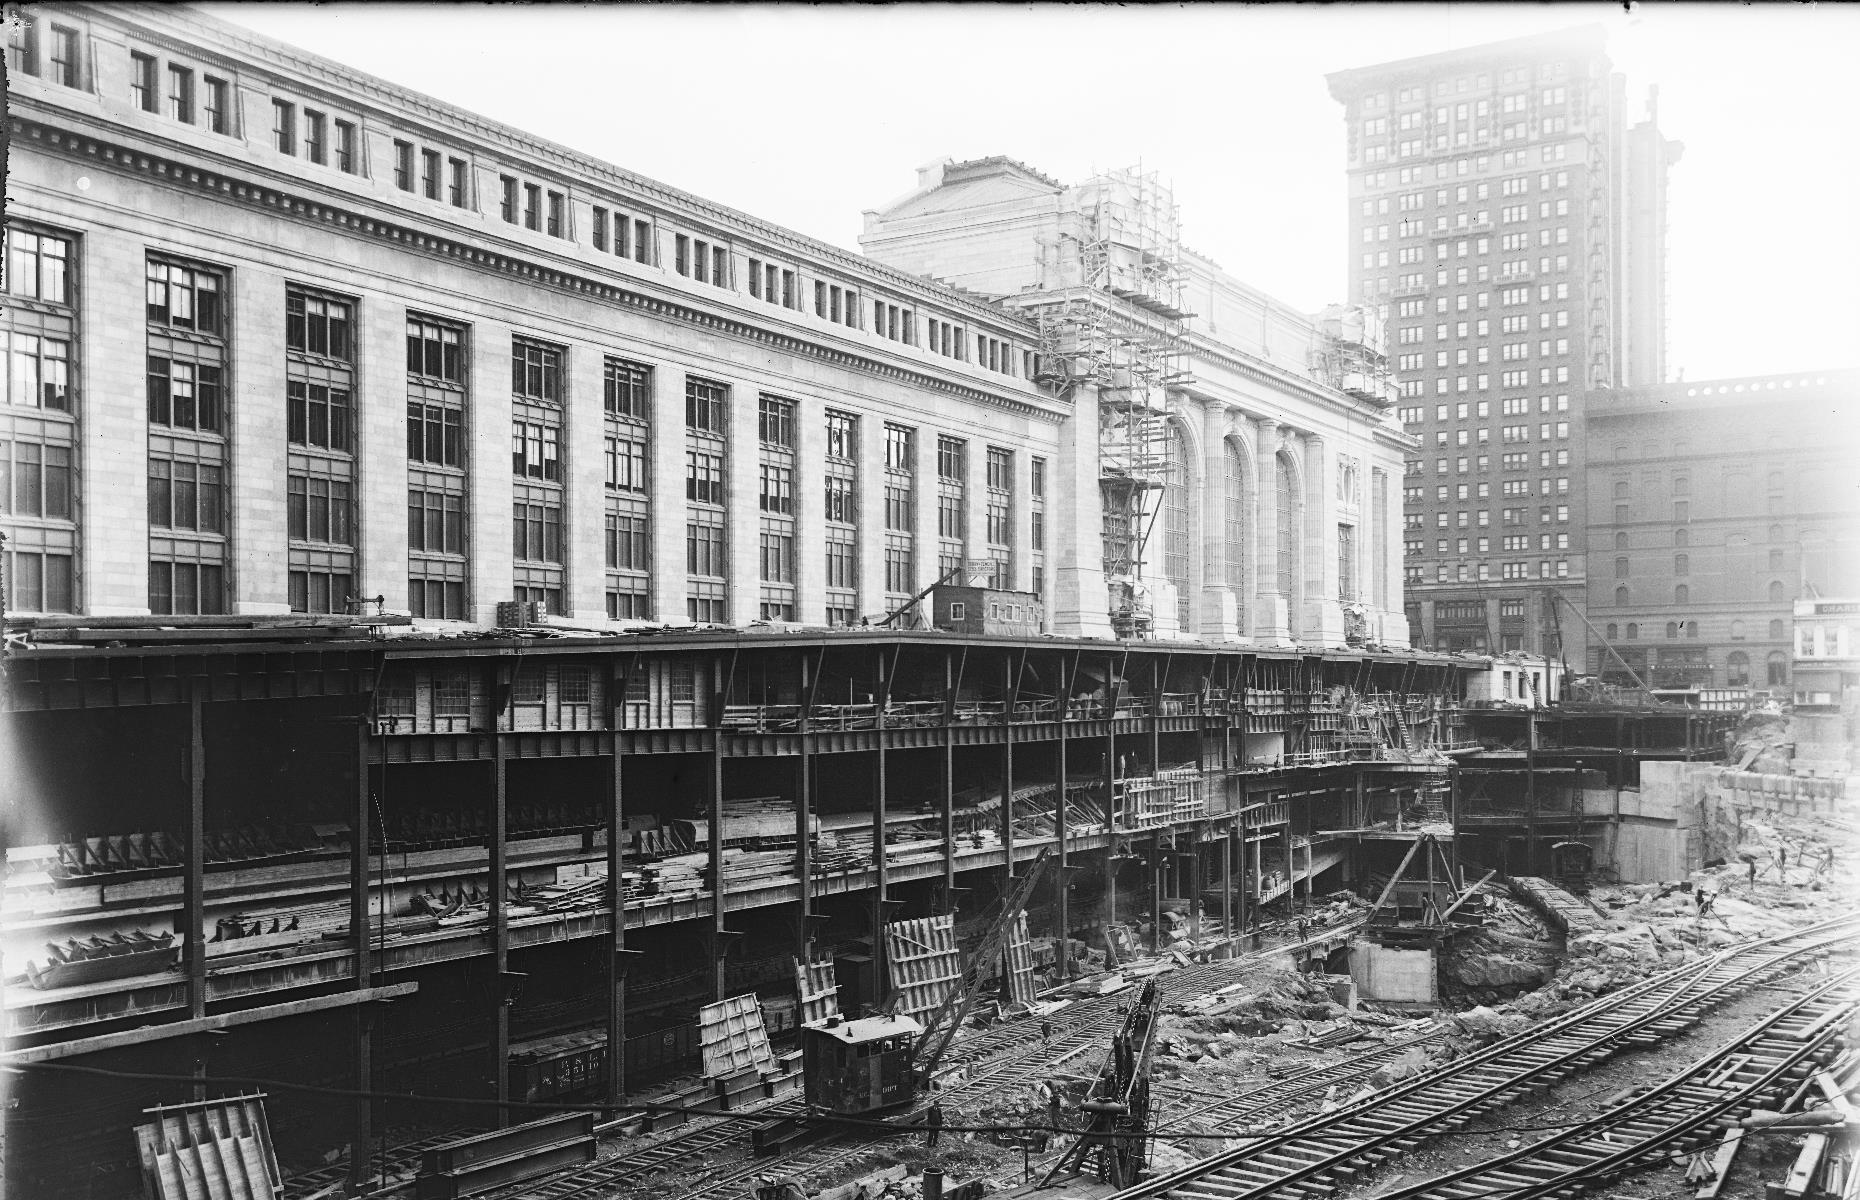 Slide 4 of 32: Grand Central opened in 1913 and has been a beloved Midtown Manhattan landmark for more than a century. It serves as both a railroad terminal and a shopping and dining complex, and is known for its elegant four-faced clock and buzzing main concourse. It's pictured here during its construction in 1912. Today it usually attracts hundreds of thousands of people per year, but it almost didn't last past the 1960s. Check out other incredible images of famous tourist attractions under construction.